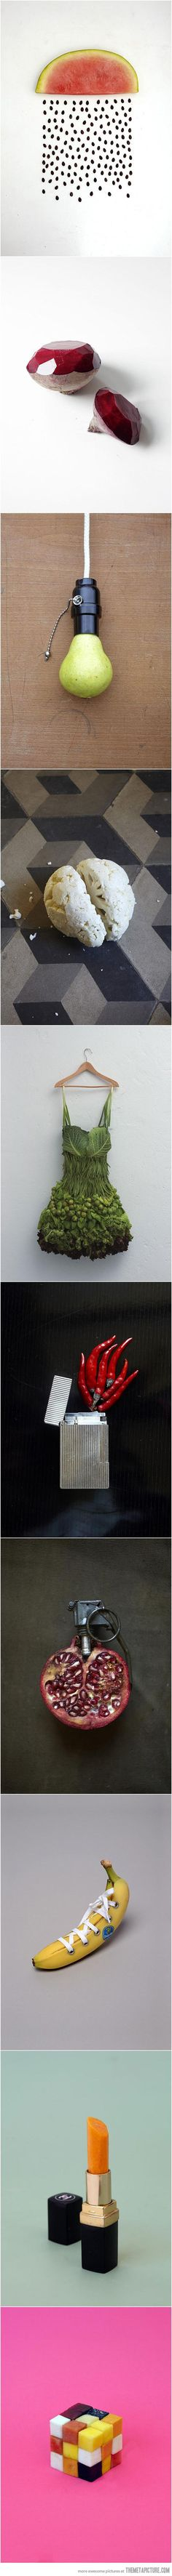 Creative food art… I am LOVING these! #autism #aspergers